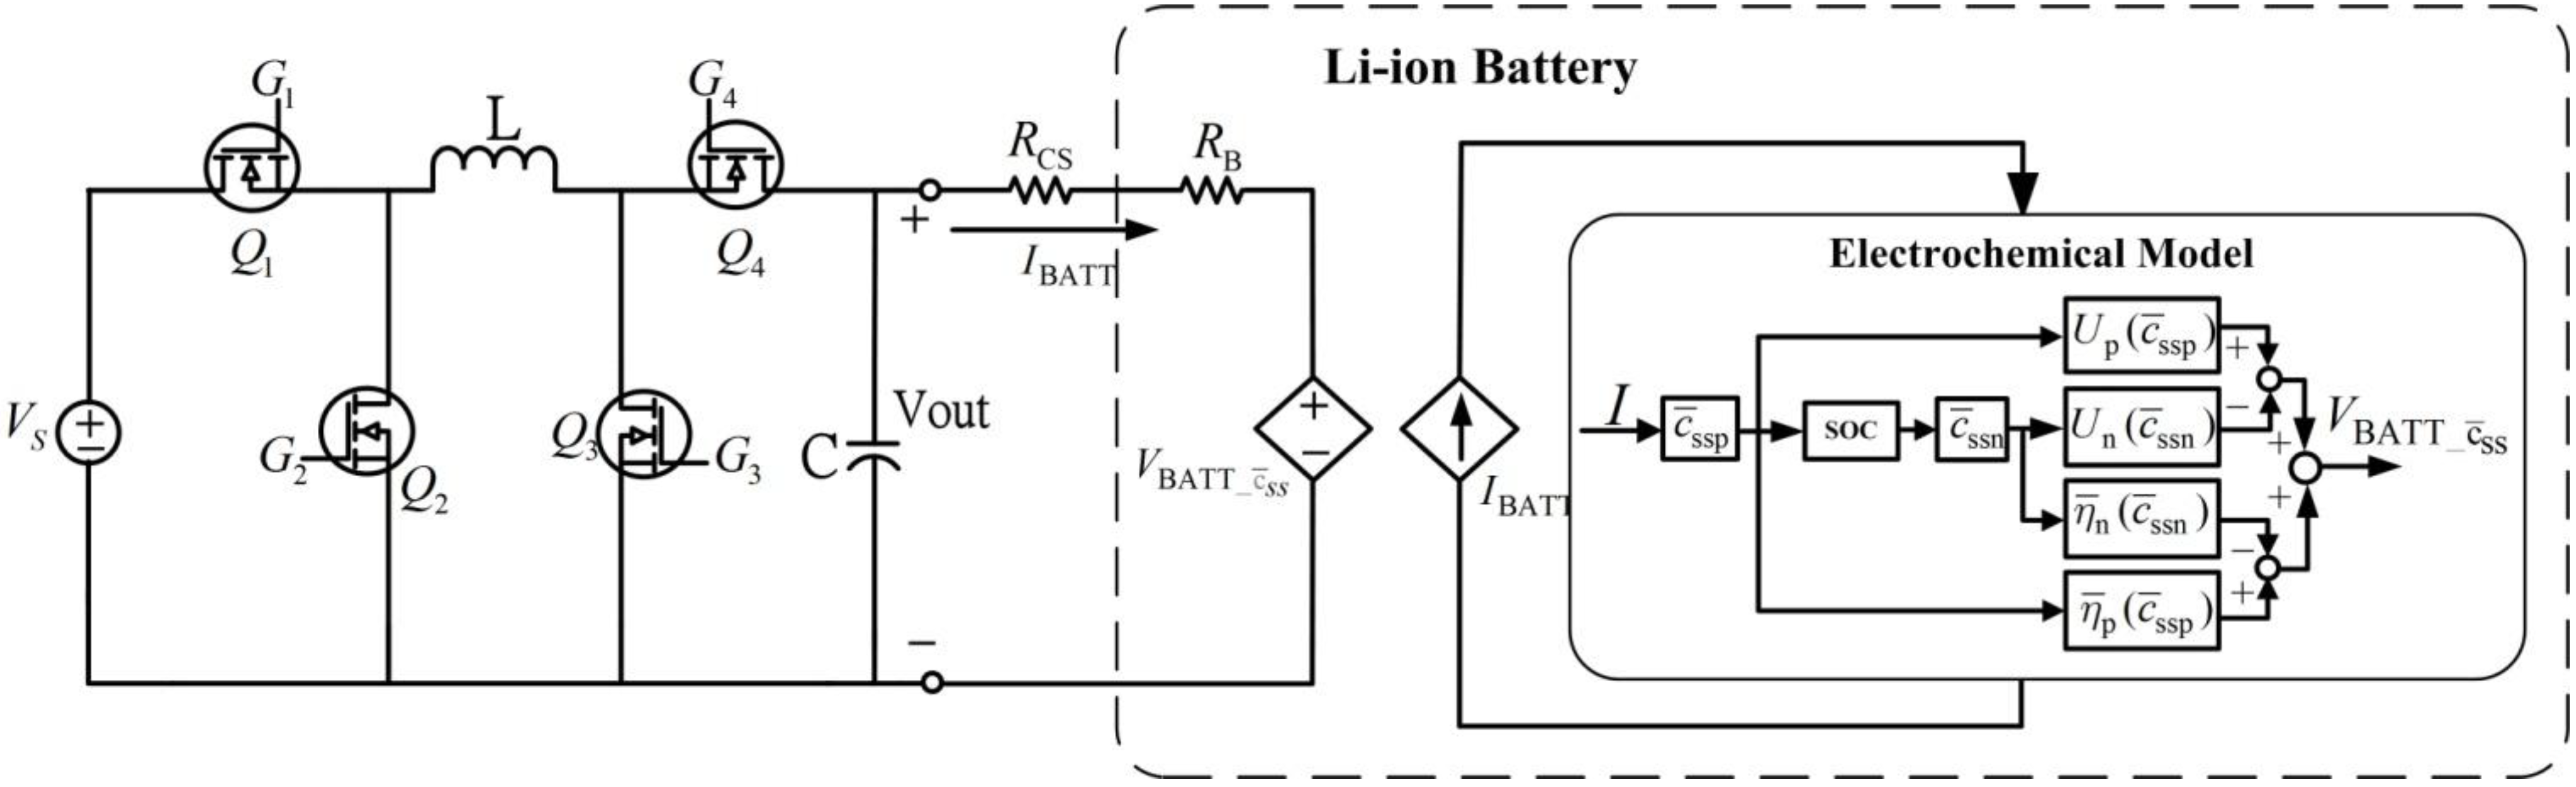 Energies Free Full Text Li Ion Battery Charging With A Buck Rc Circuits 06 01669 G006